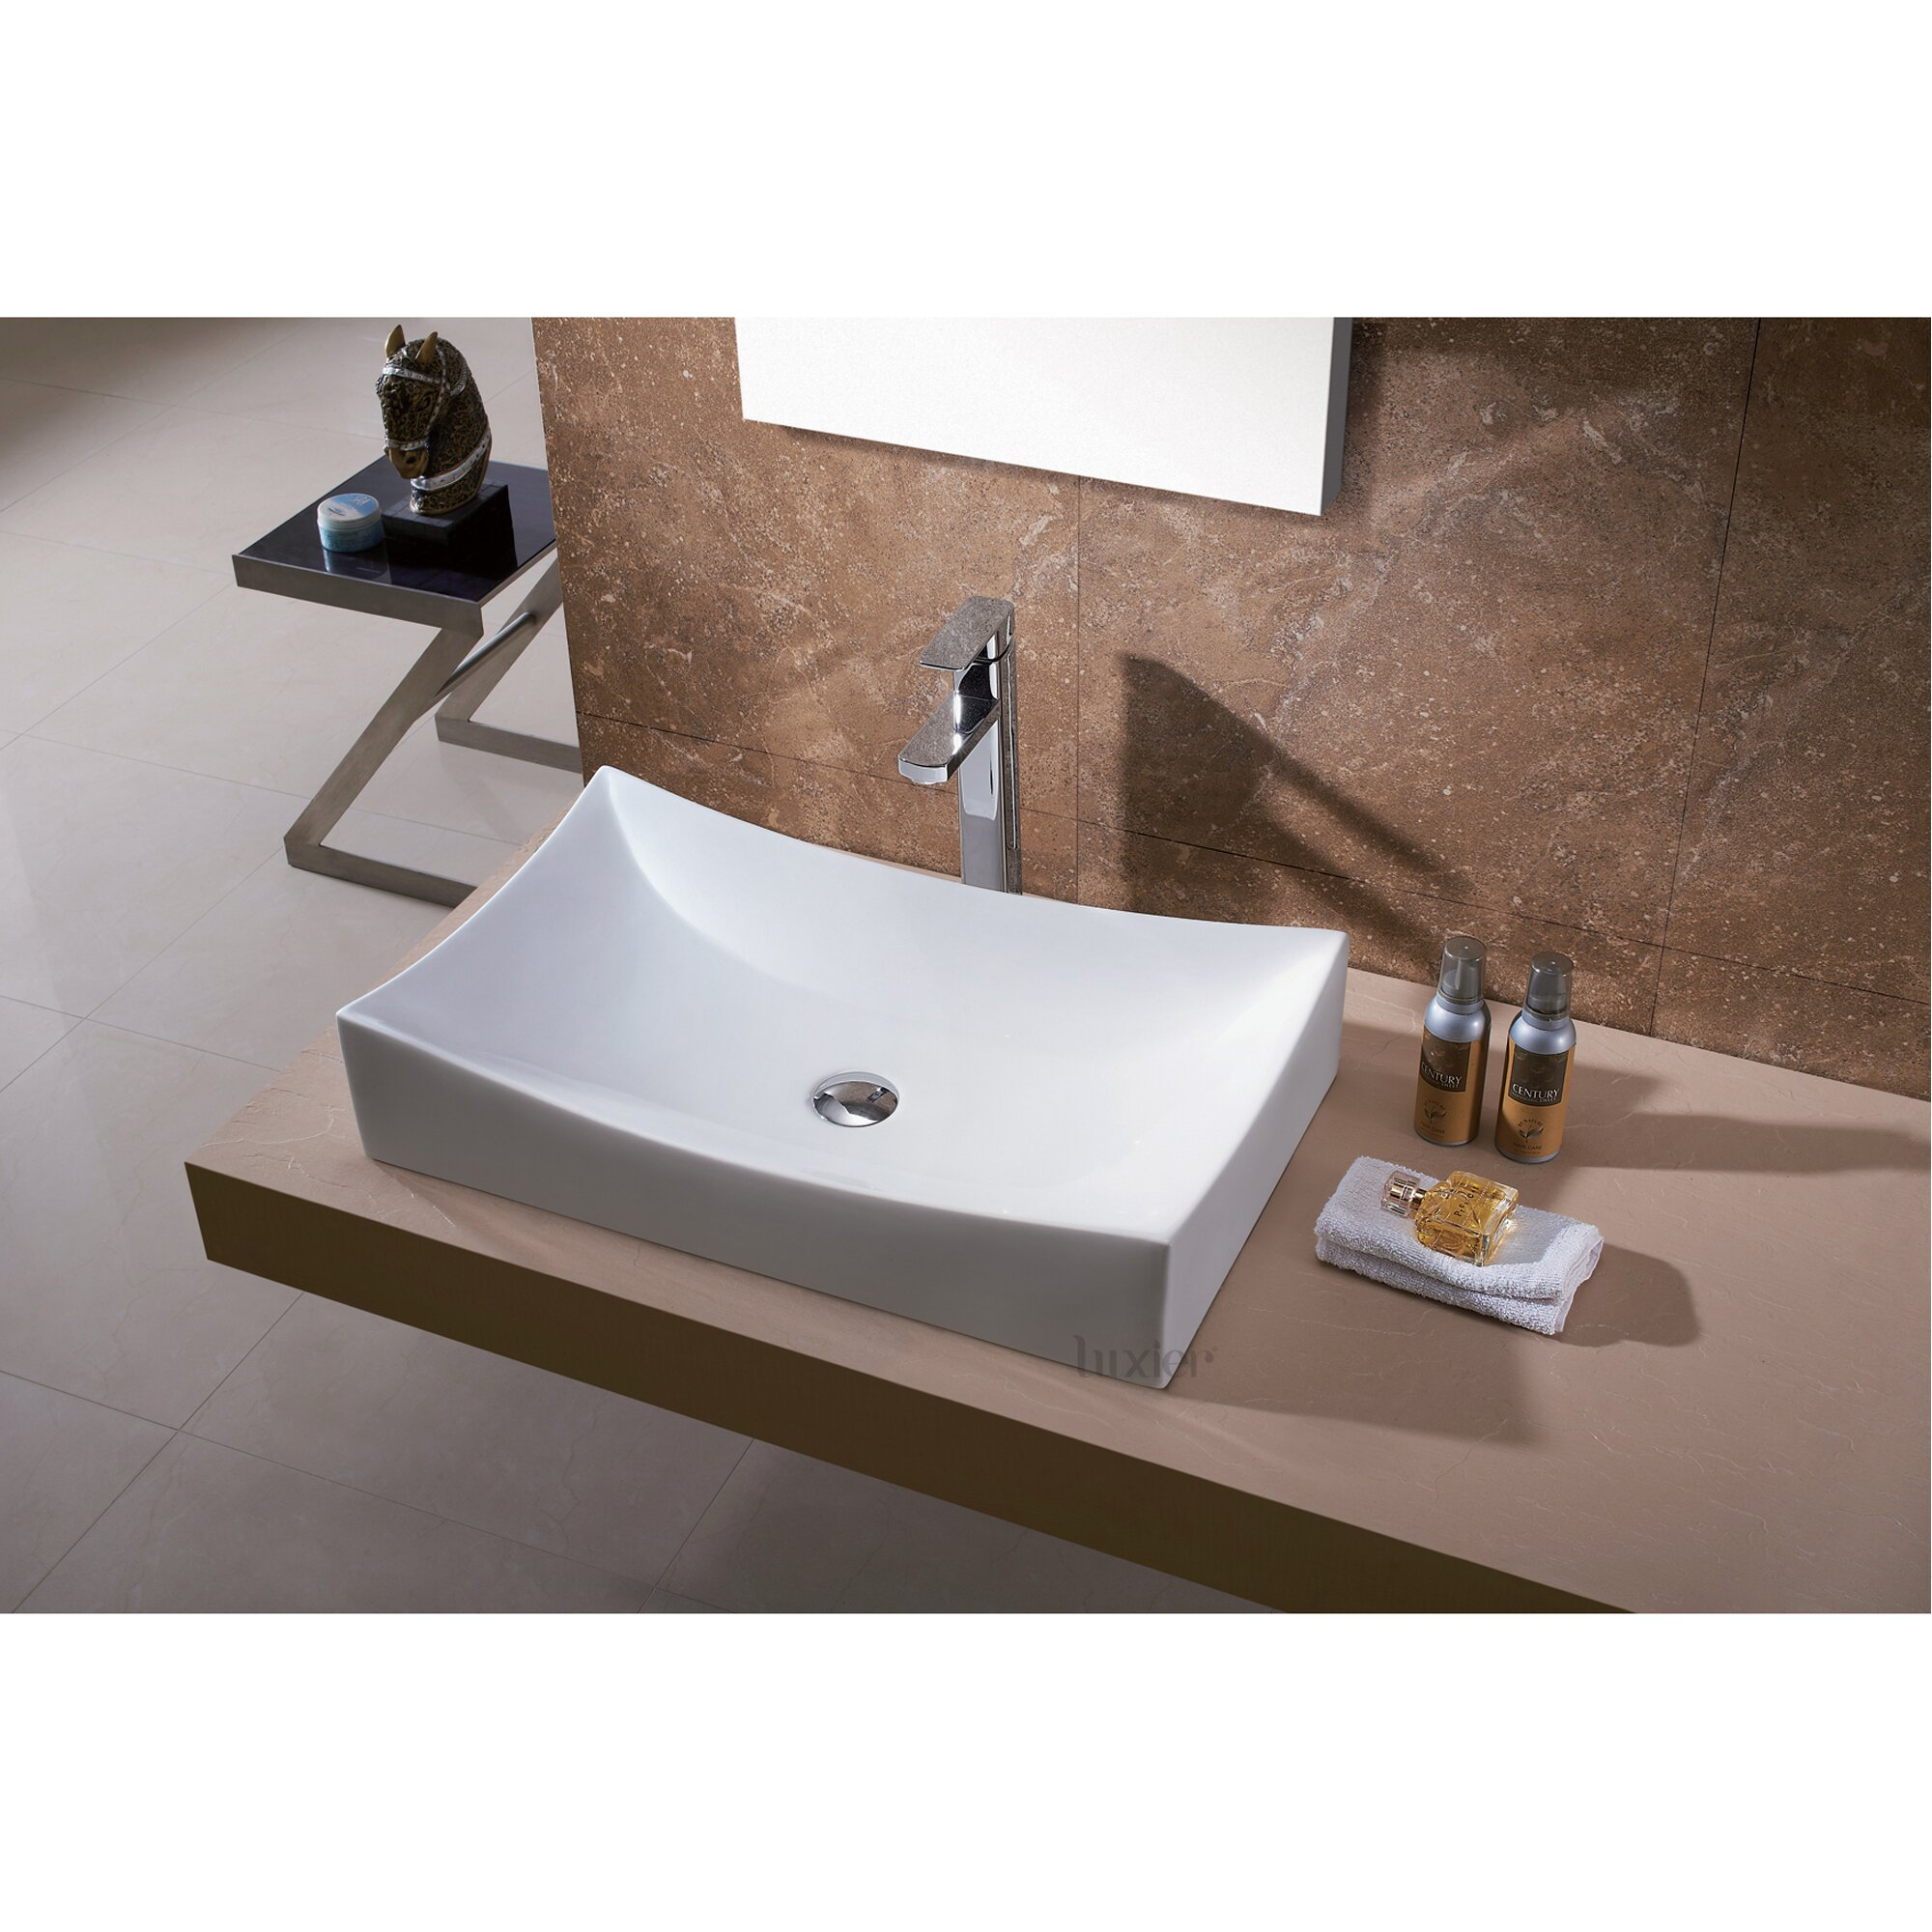 Luxier L-001 Bathroom Porcelain Ceramic Vessel Vanity Sink Art Basin